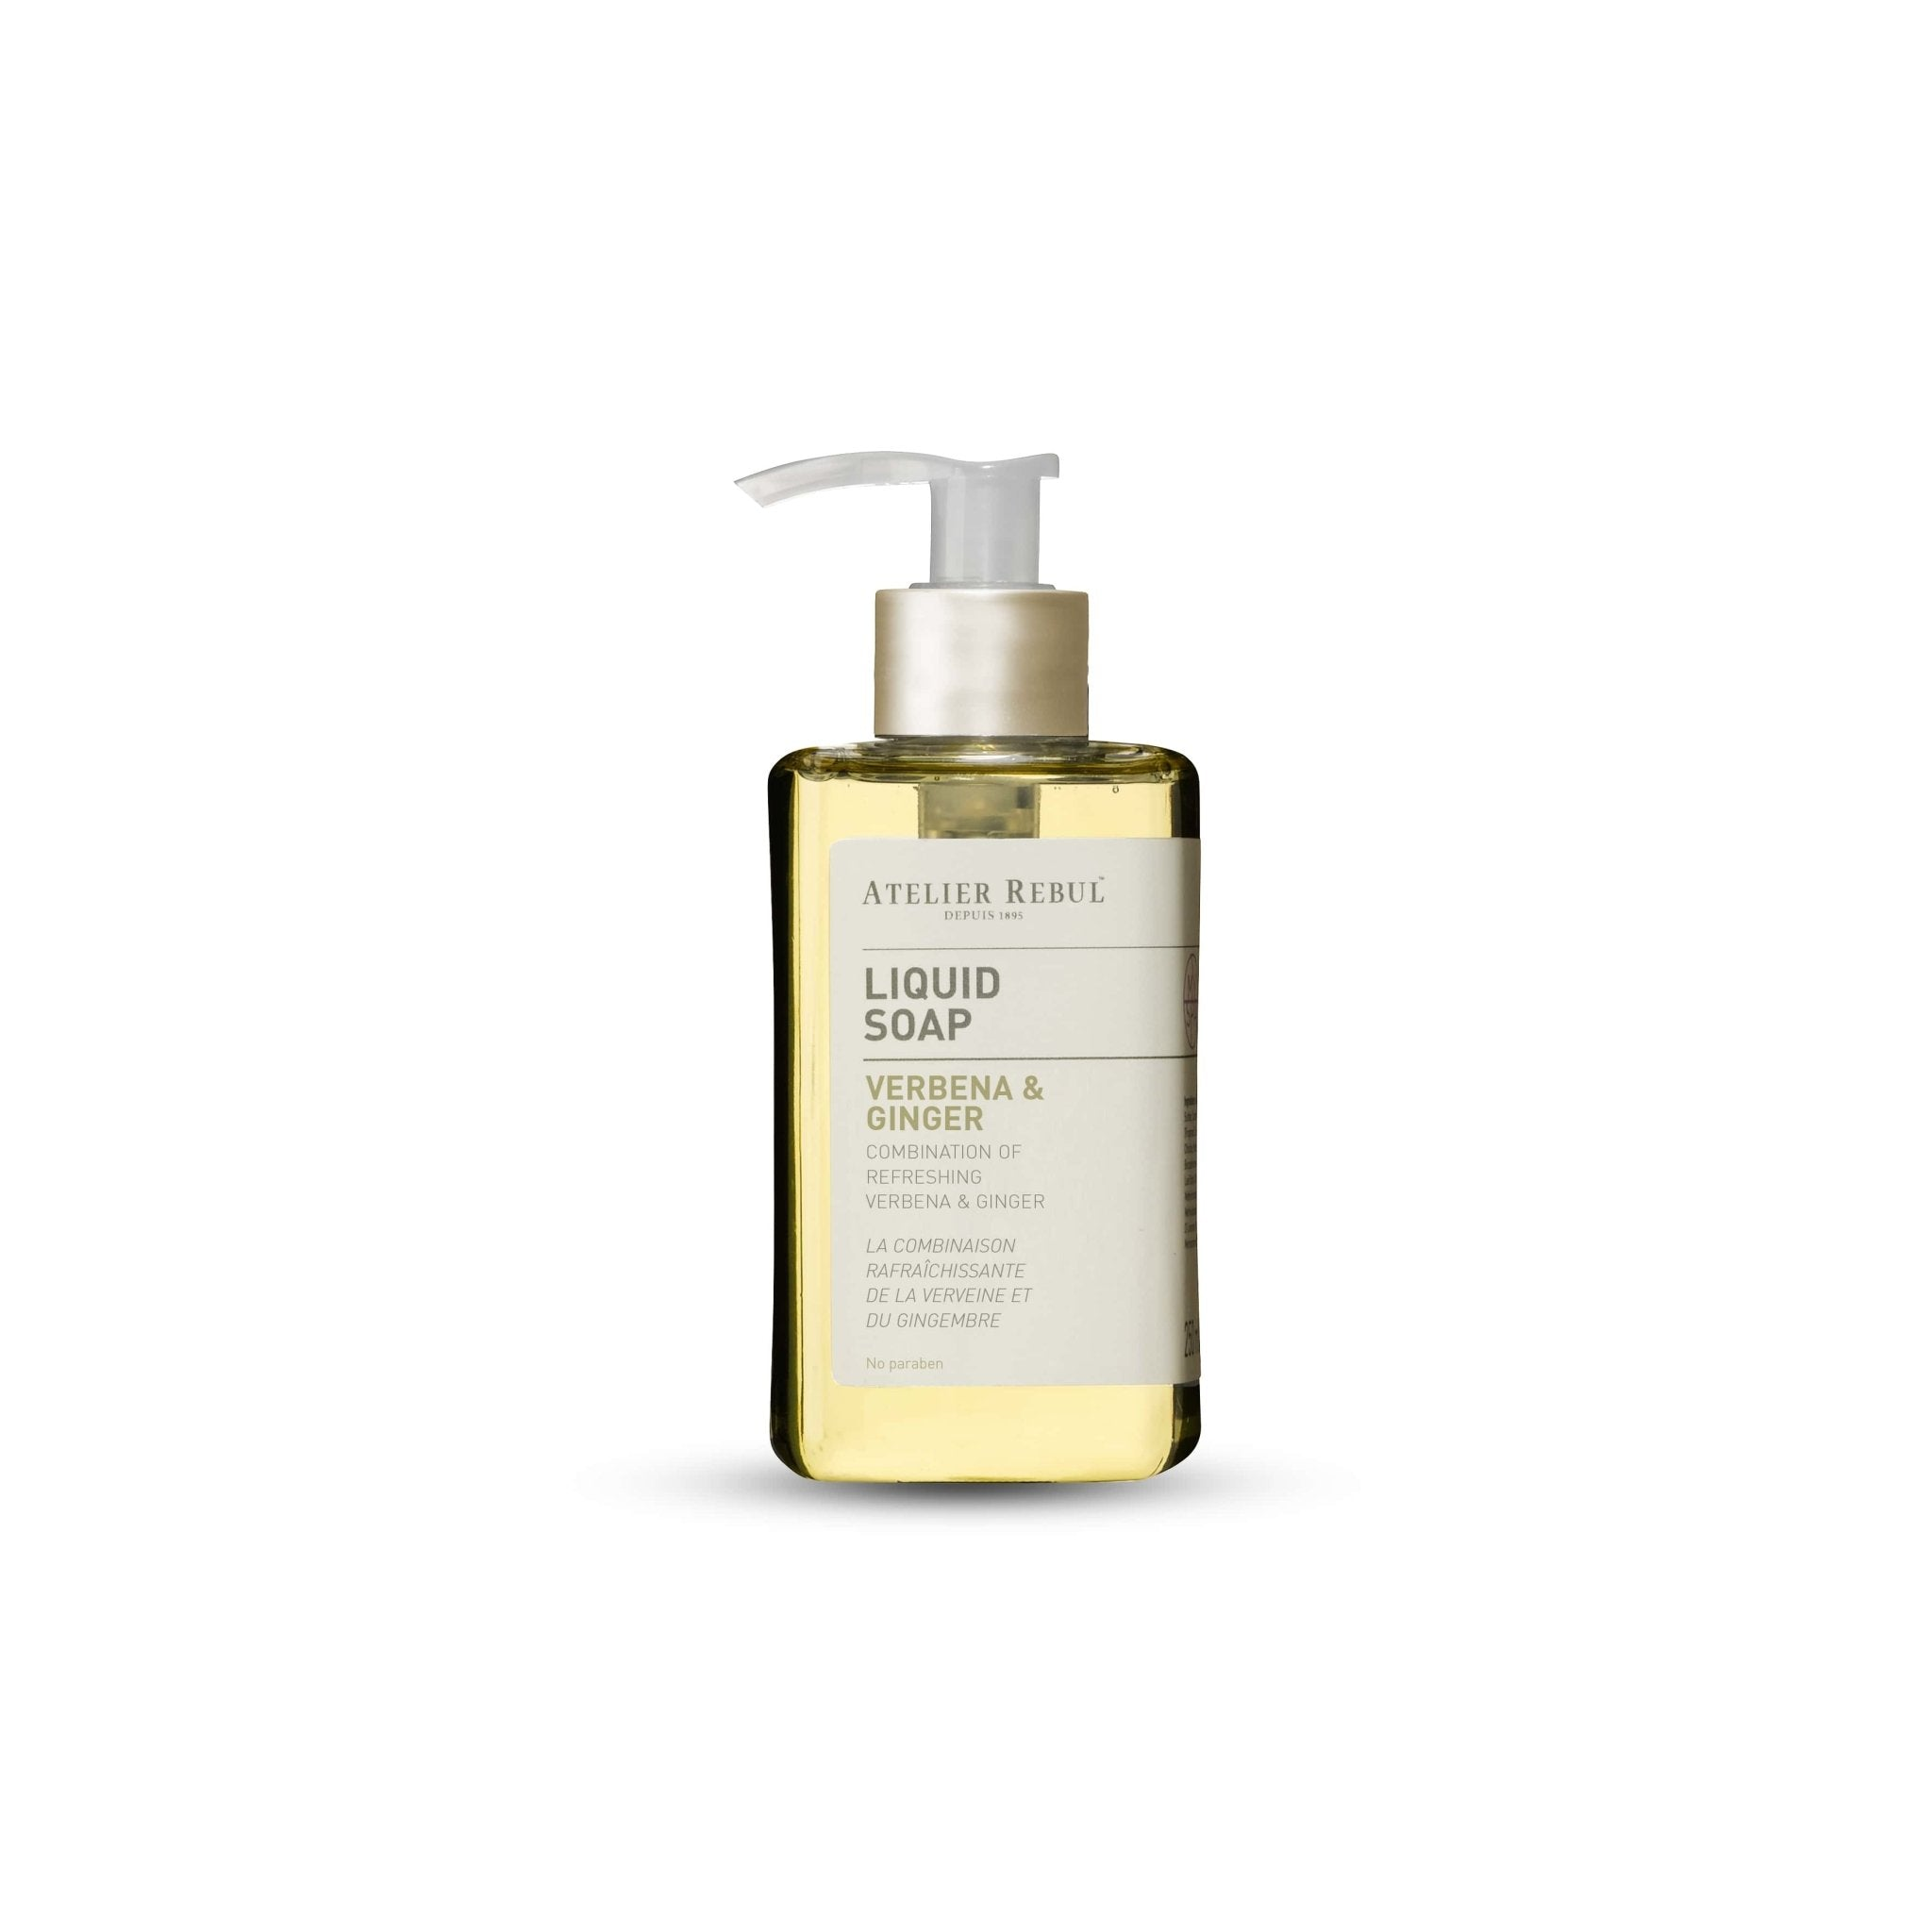 ATELIER REBUL -LIQUED SOAP / VERBENA & GINGER - 250 ML.